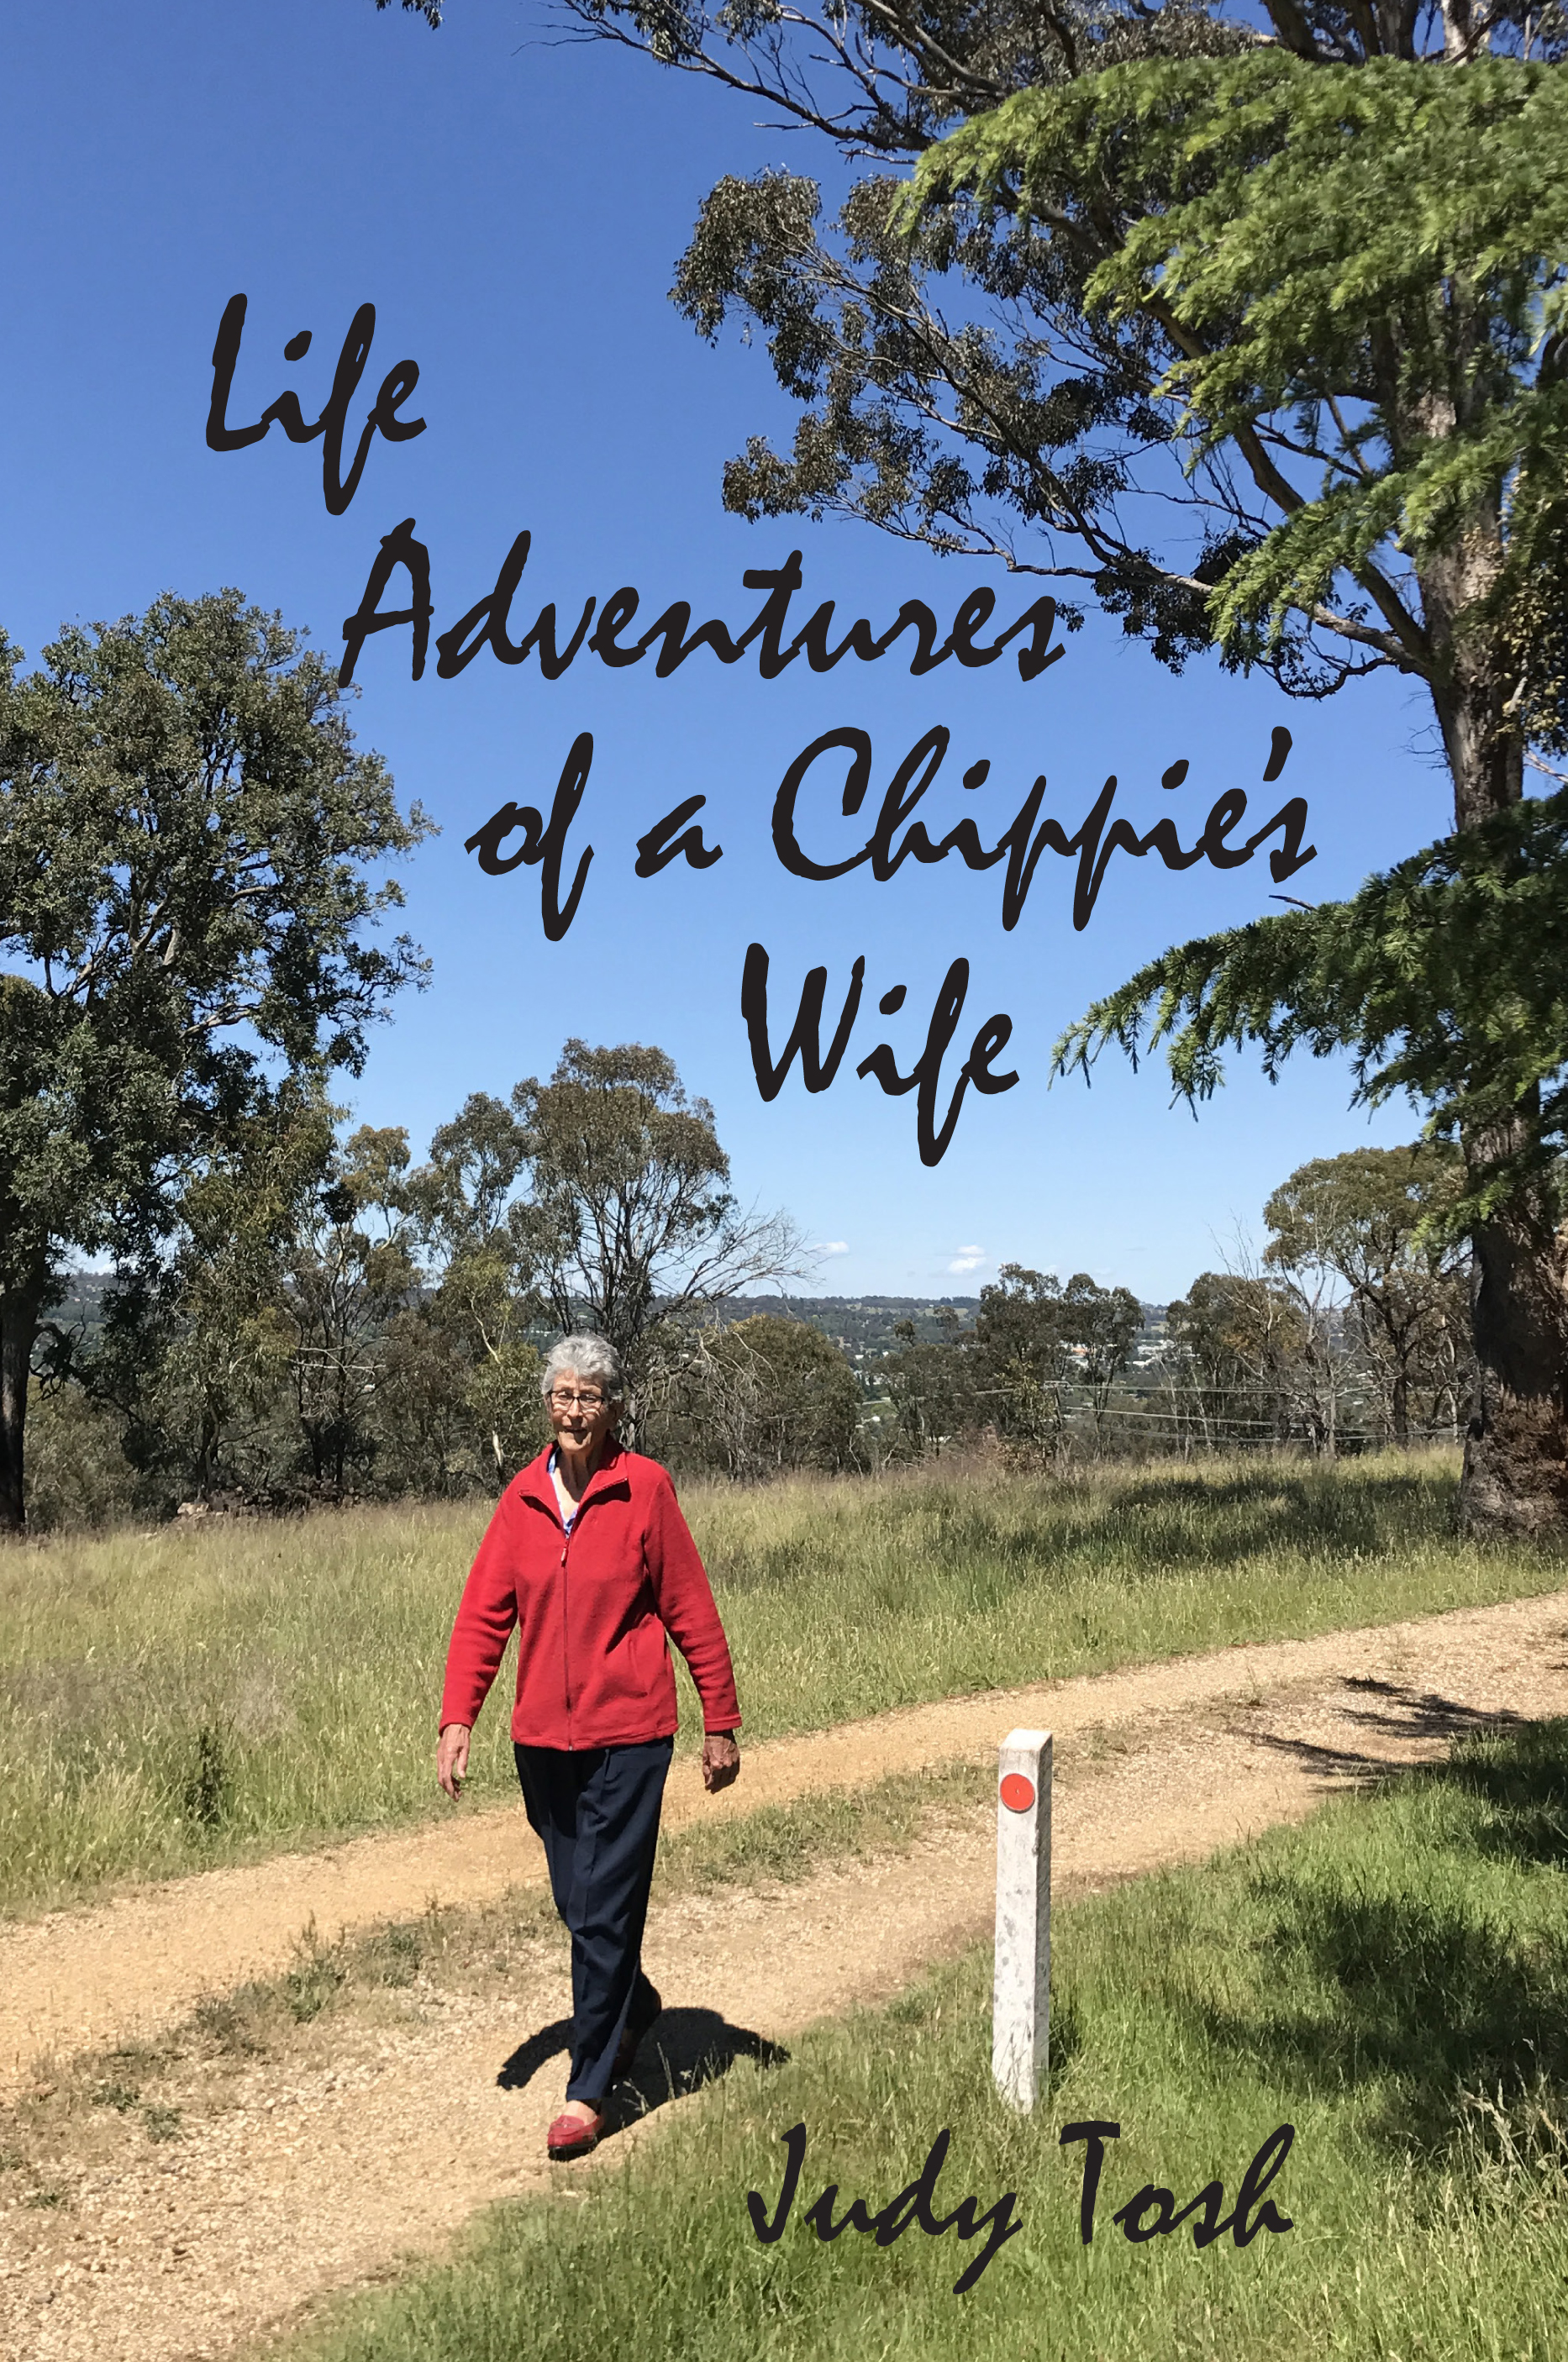 AAA - V2 - Life Adventures of a Chippie's Wife front Cover revised (2).jpg